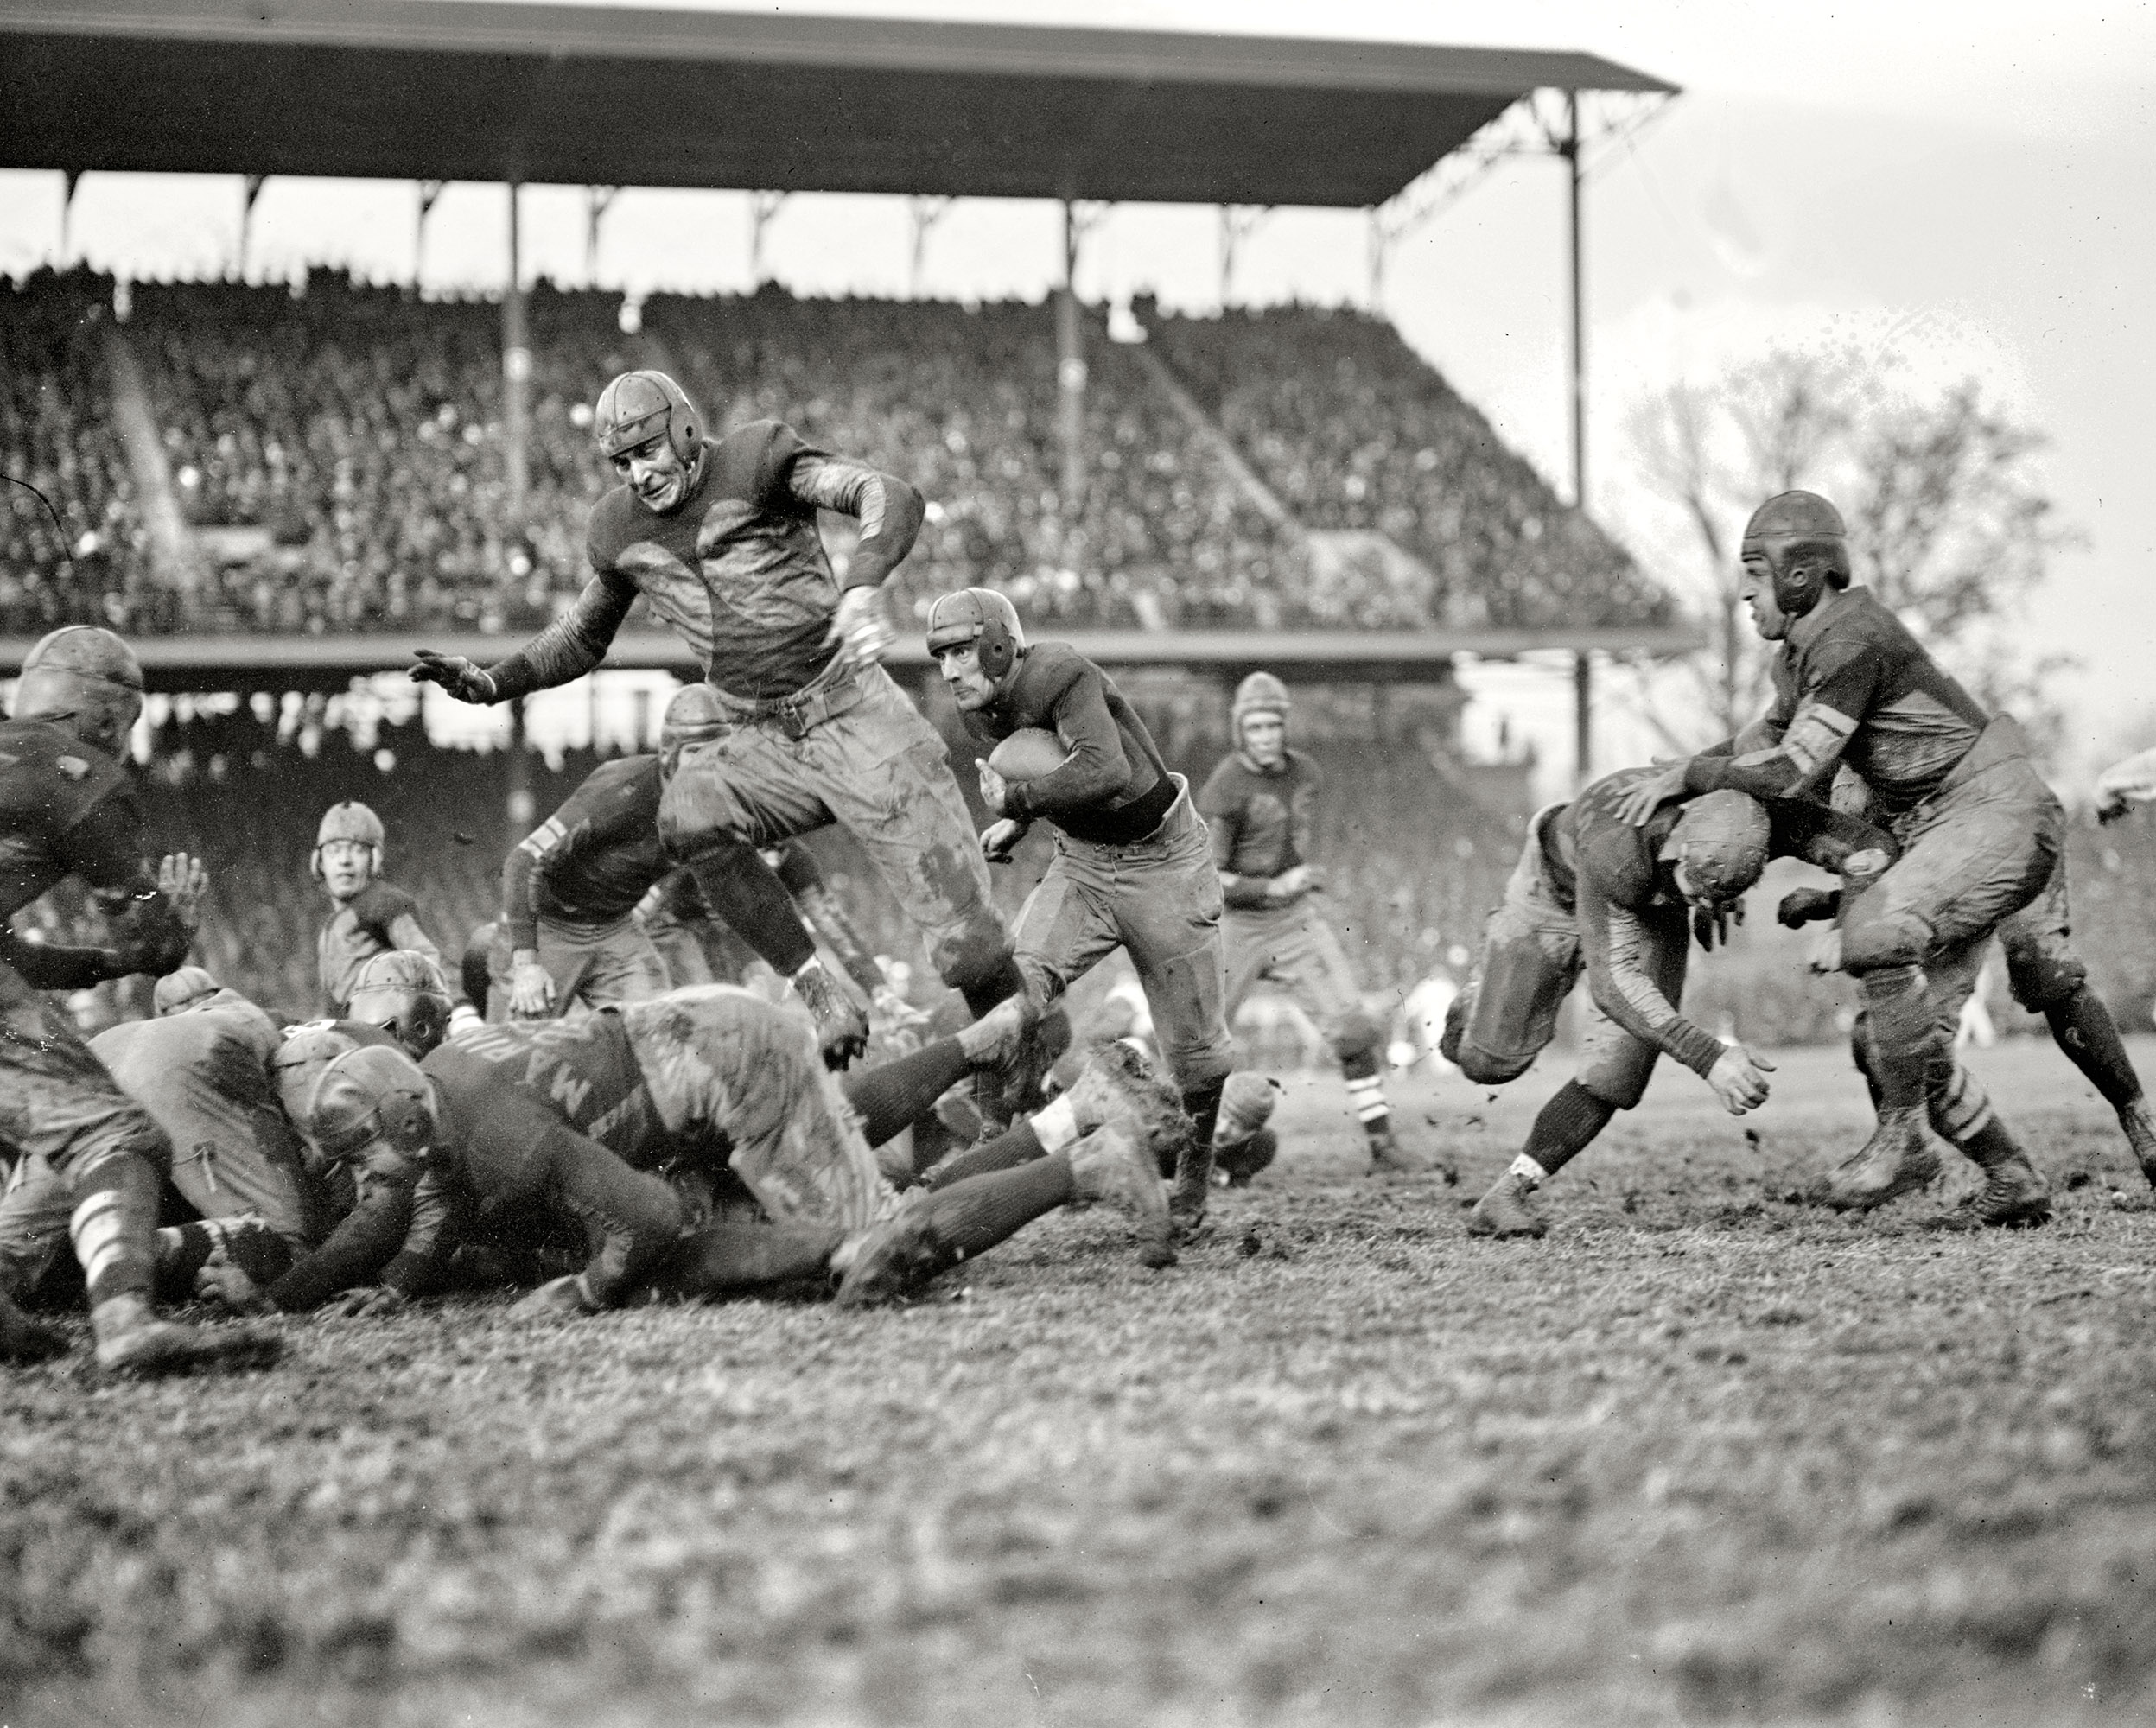 December 1, 1923. Washington, D.C.  Marine-Army game, Griffith Stadium.  Marines carried the day 7-0.